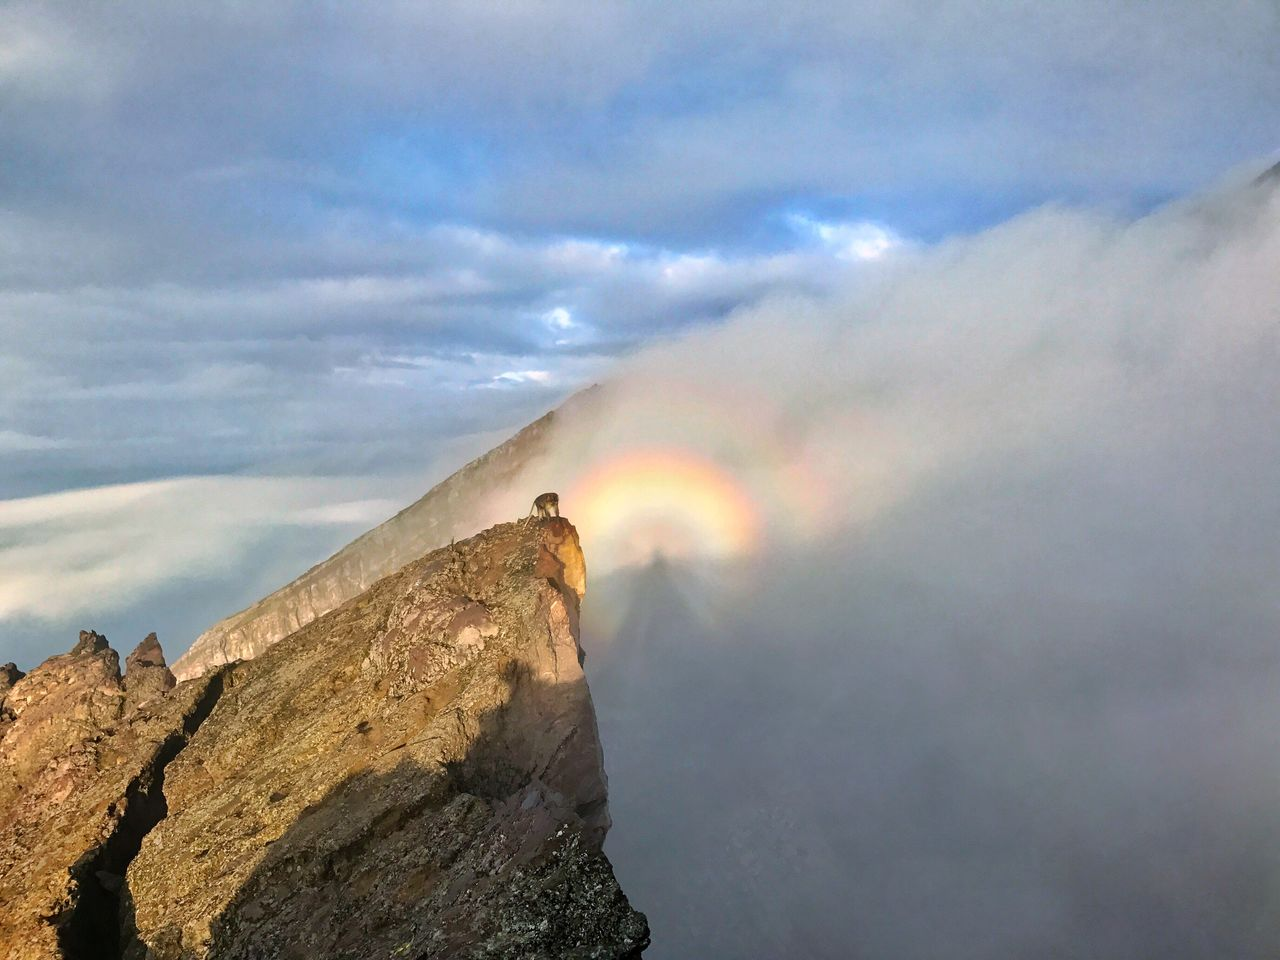 sky, nature, beauty in nature, cloud - sky, scenics, outdoors, cliff, day, adventure, mountain, landscape, no people